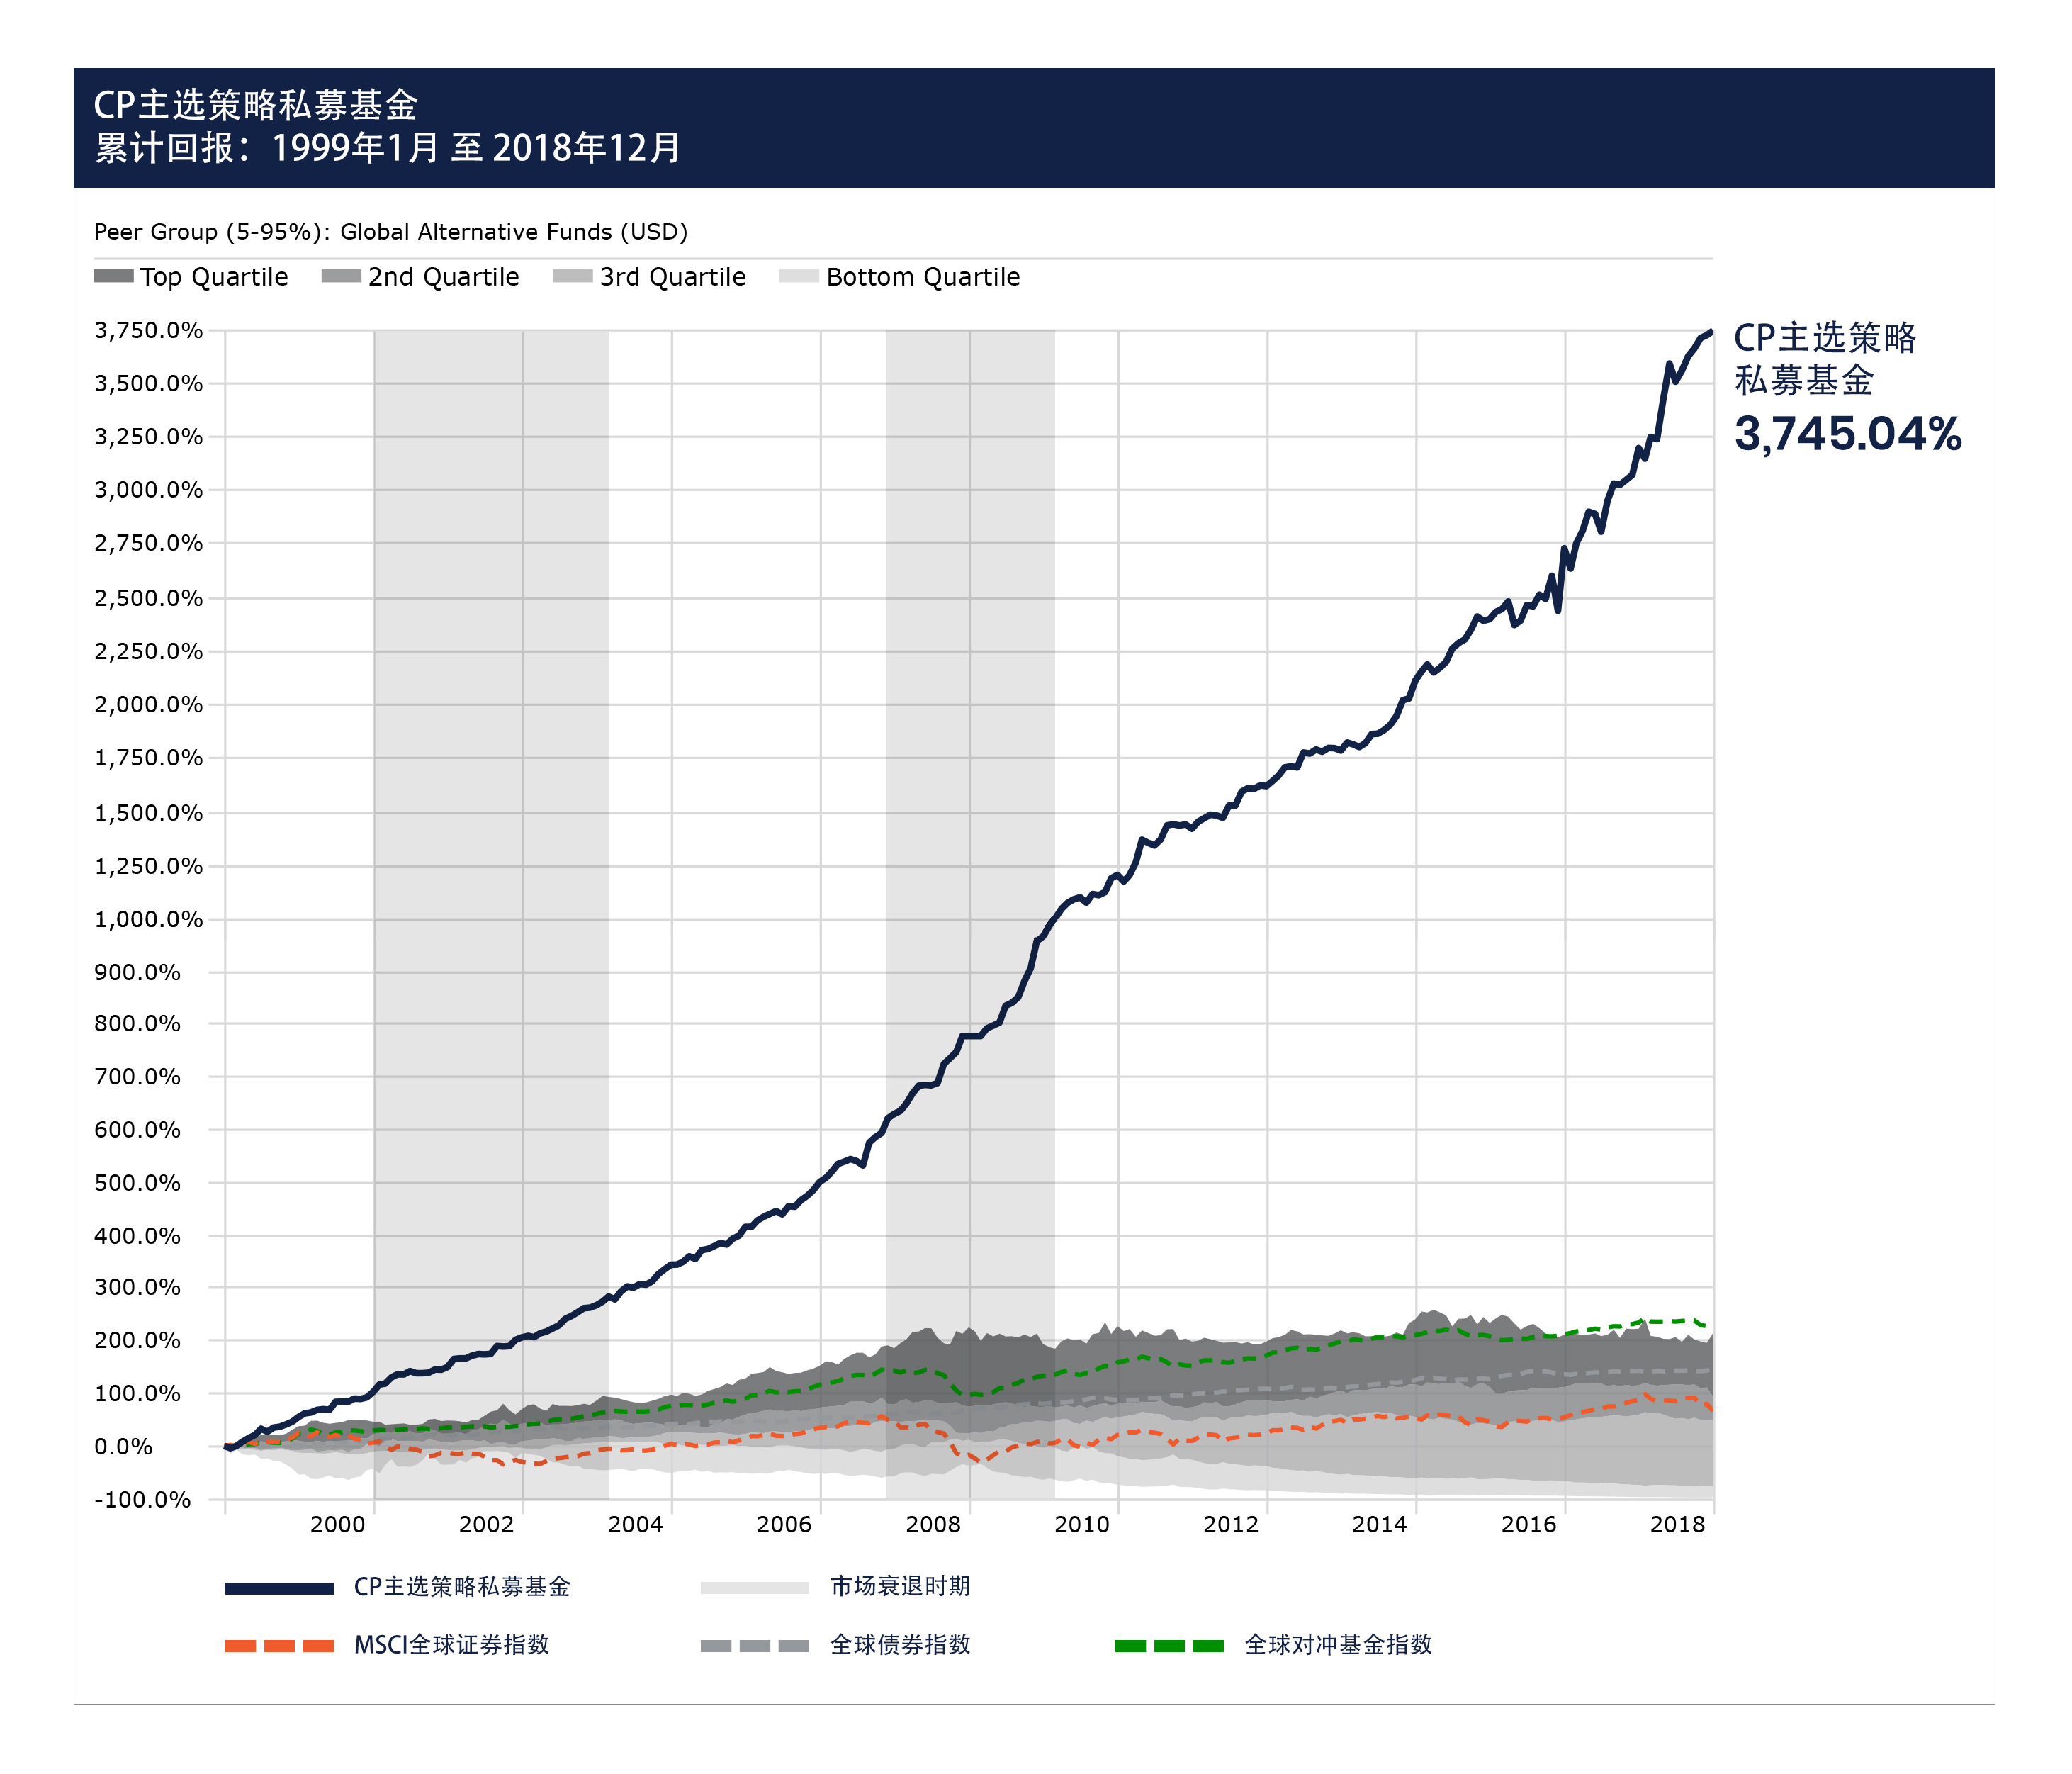 cps-master-track-record-1999-2018-chinese